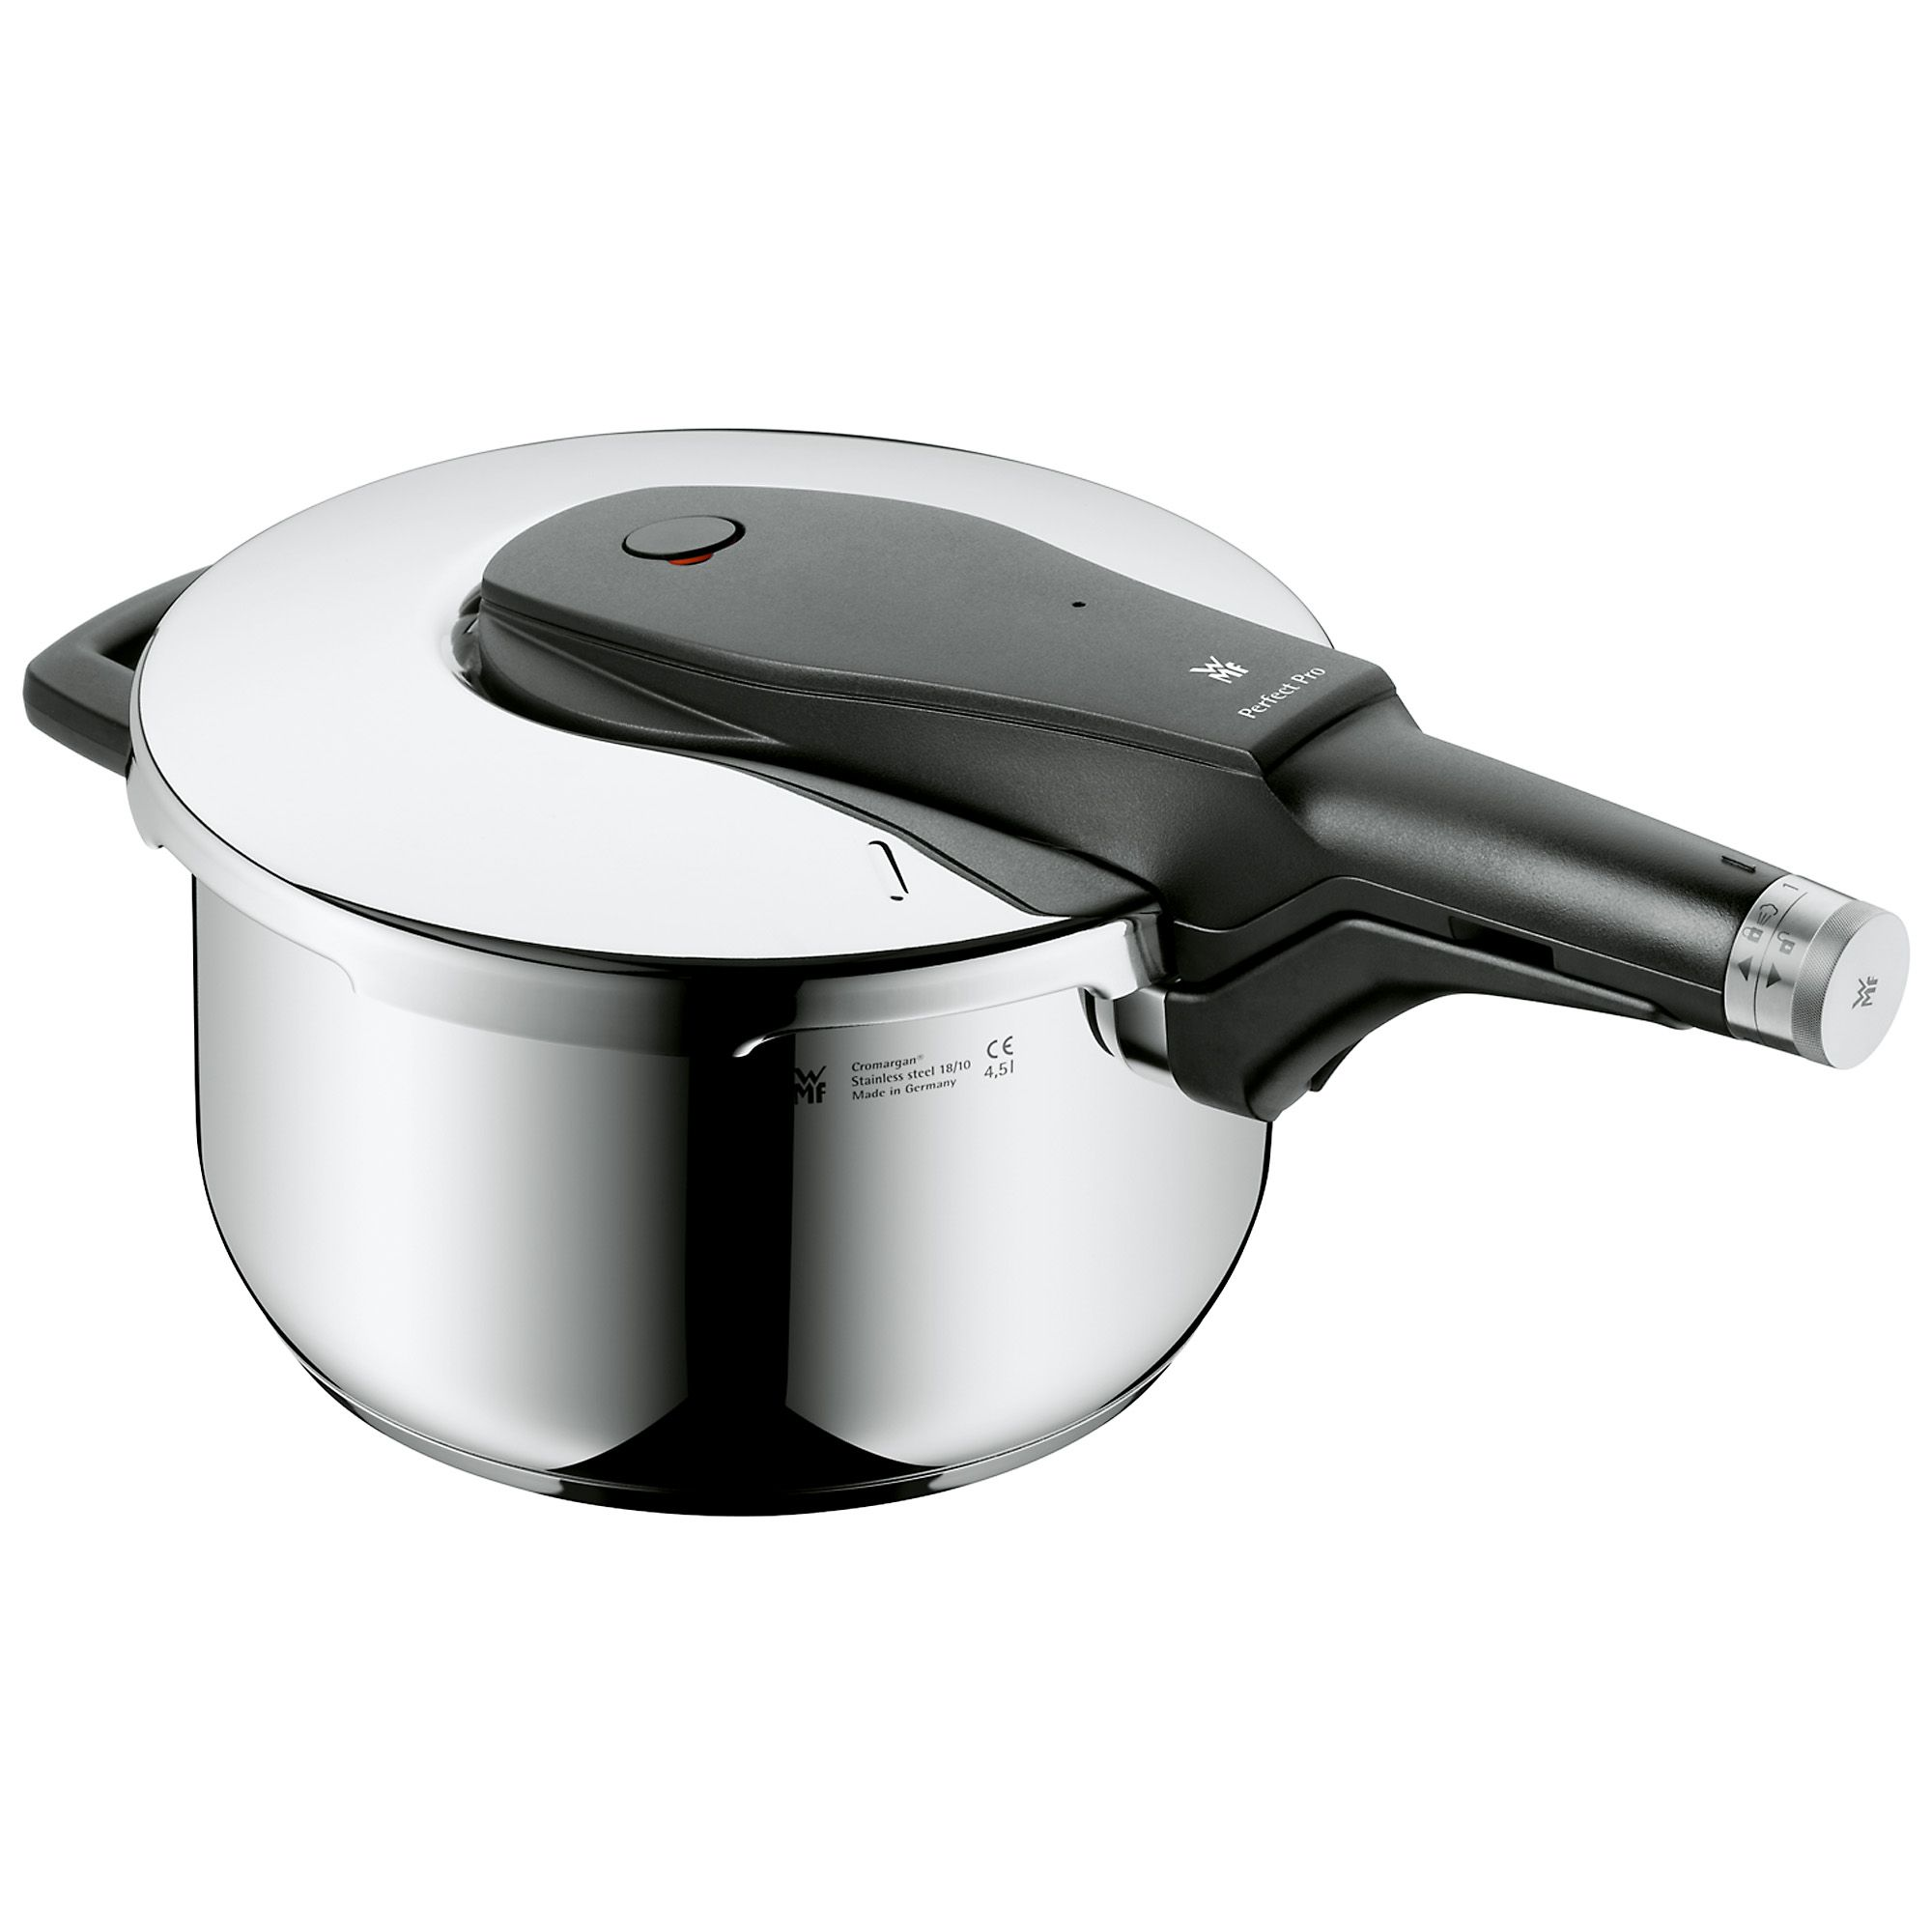 Perfect pro pressure cooker 4.5 l